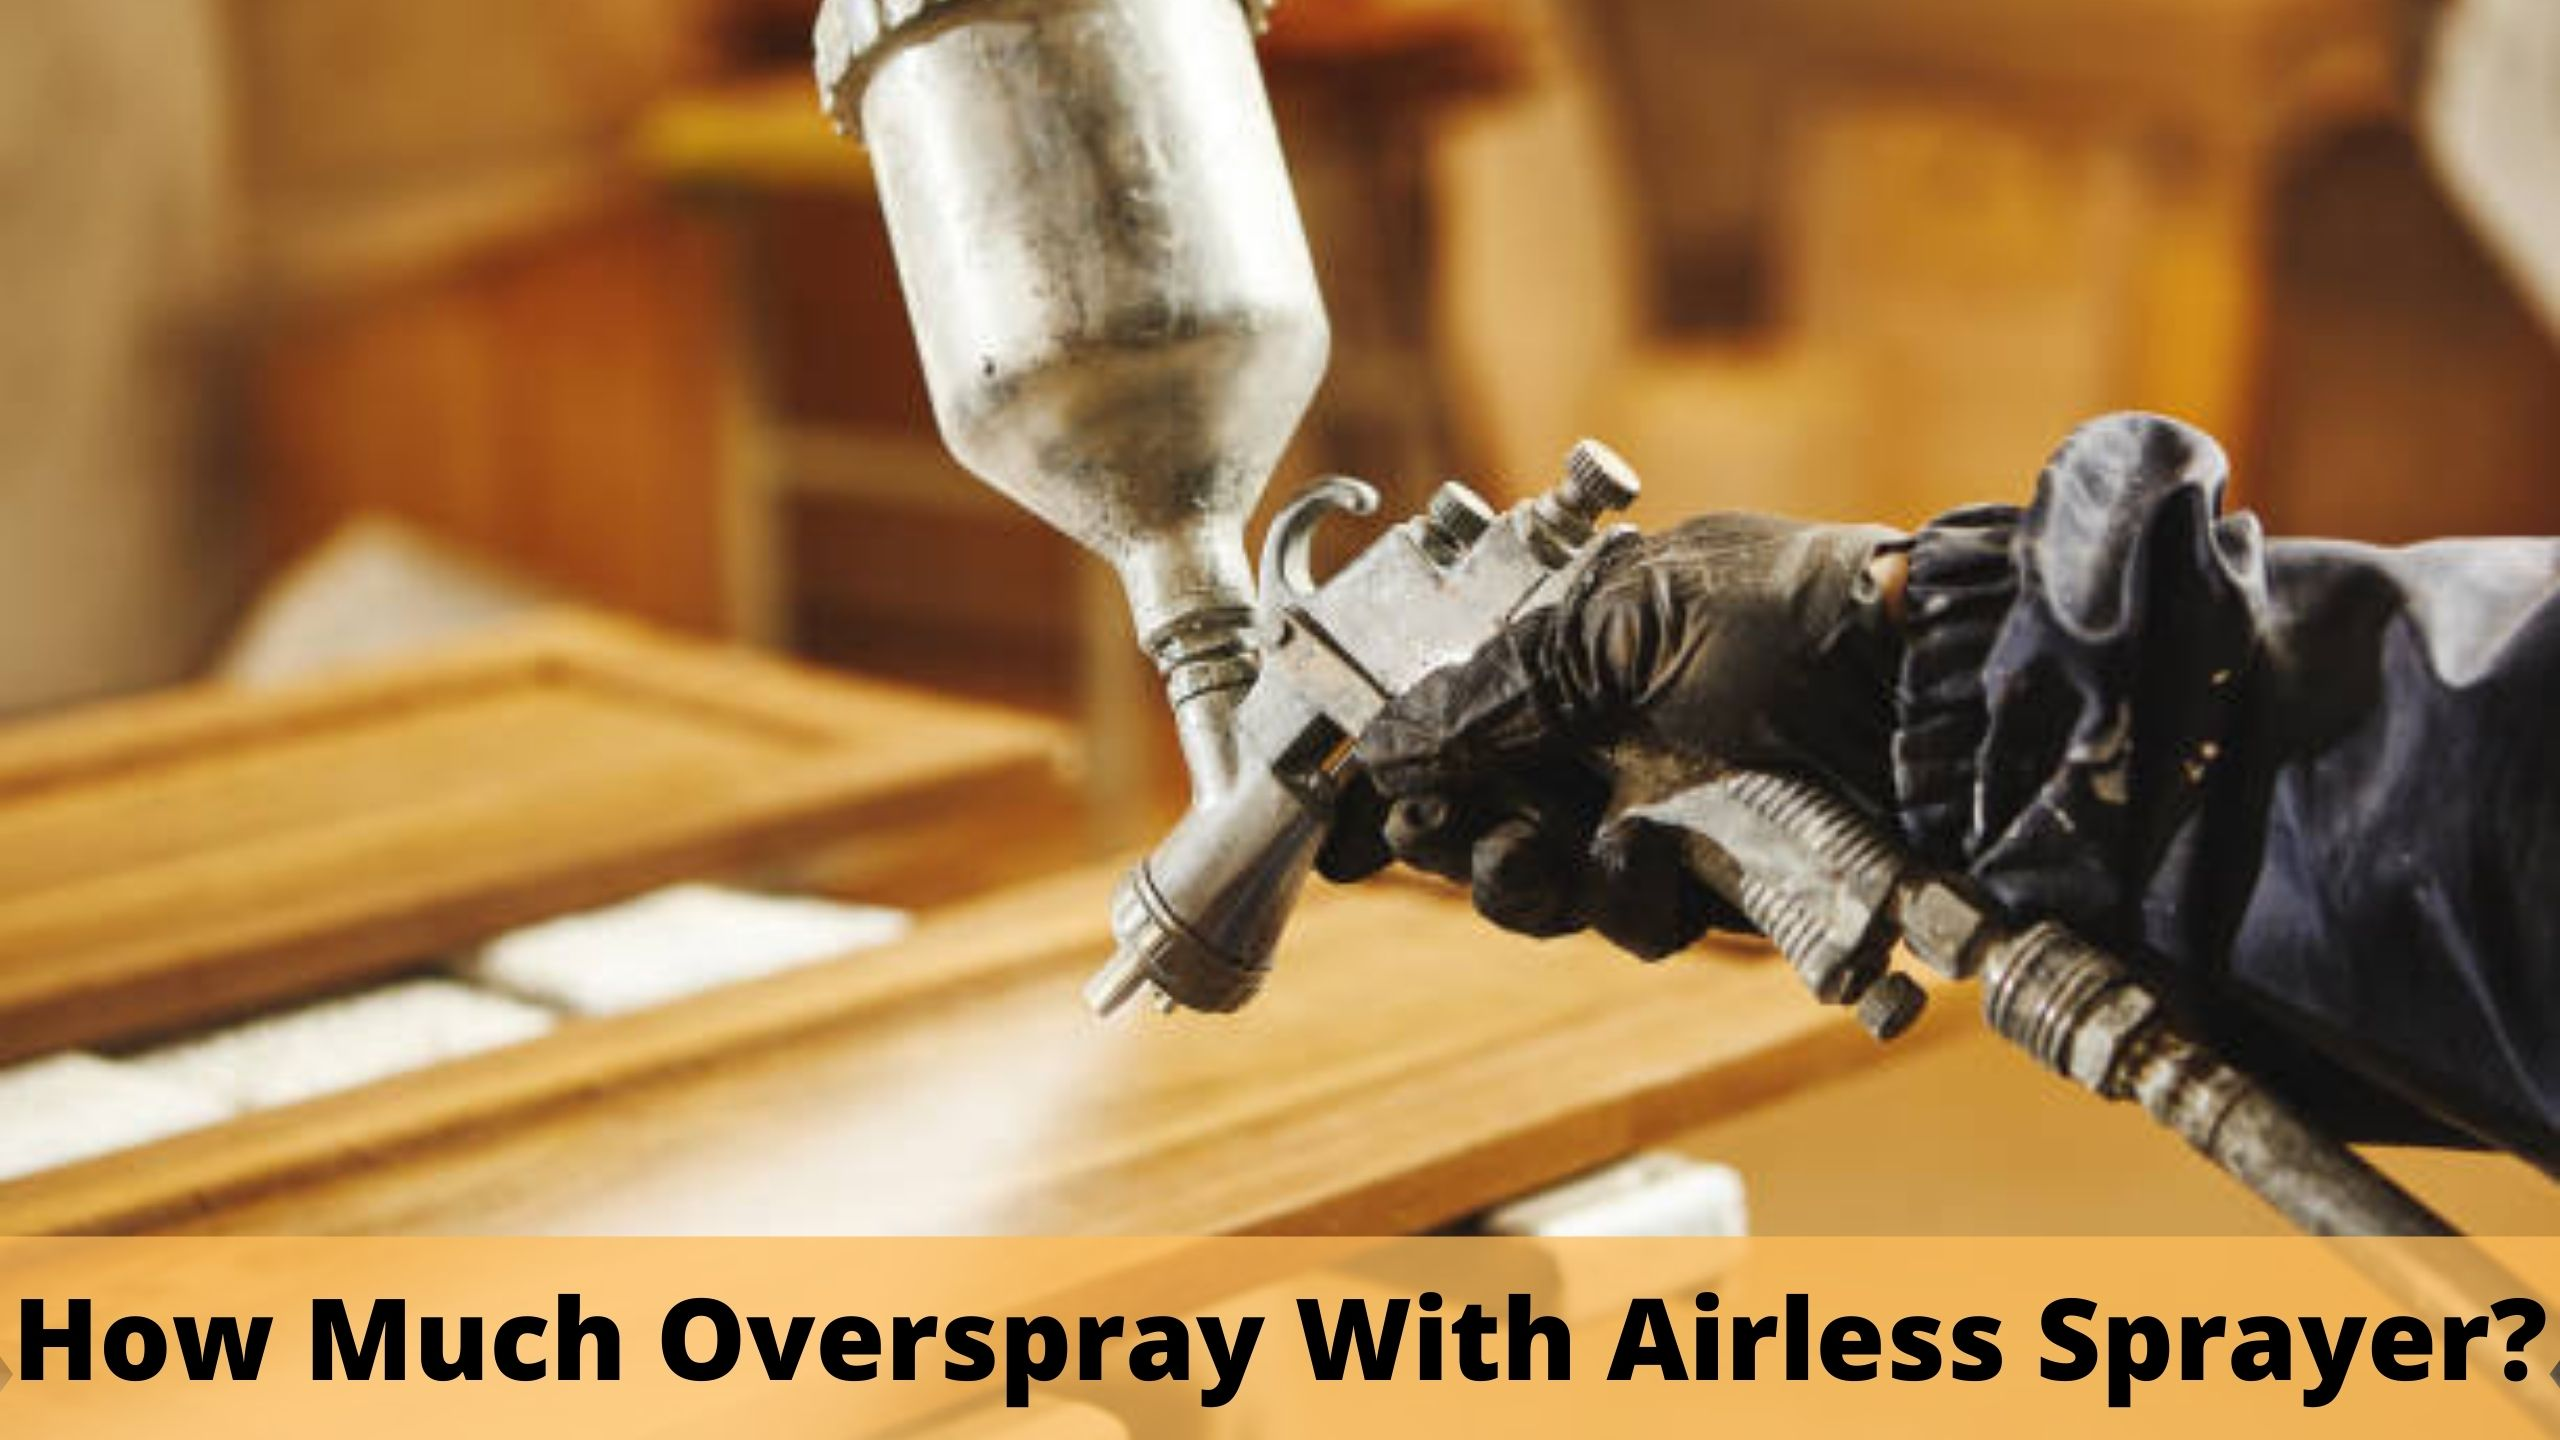 How much overspray with airless sprayer